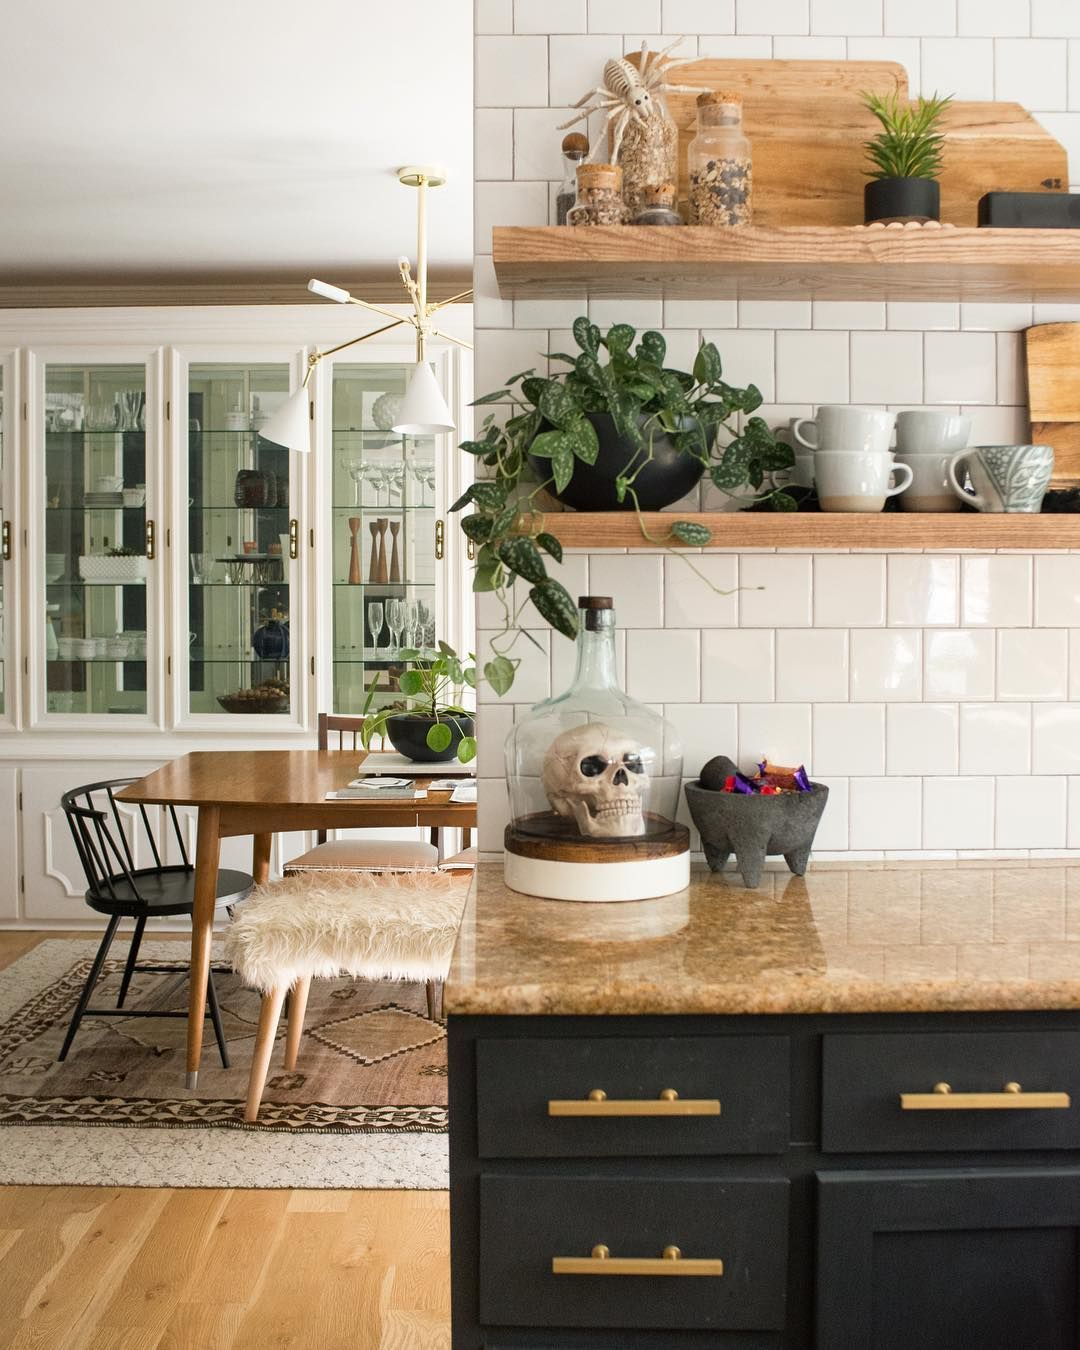 2 214 Mentions J Aime 111 Commentaires Ashley Biggerthanthethreeofus Sur Instagram Here S Kitchen Cabinets Decor Cabinet Decor Halloween Kitchen Decor